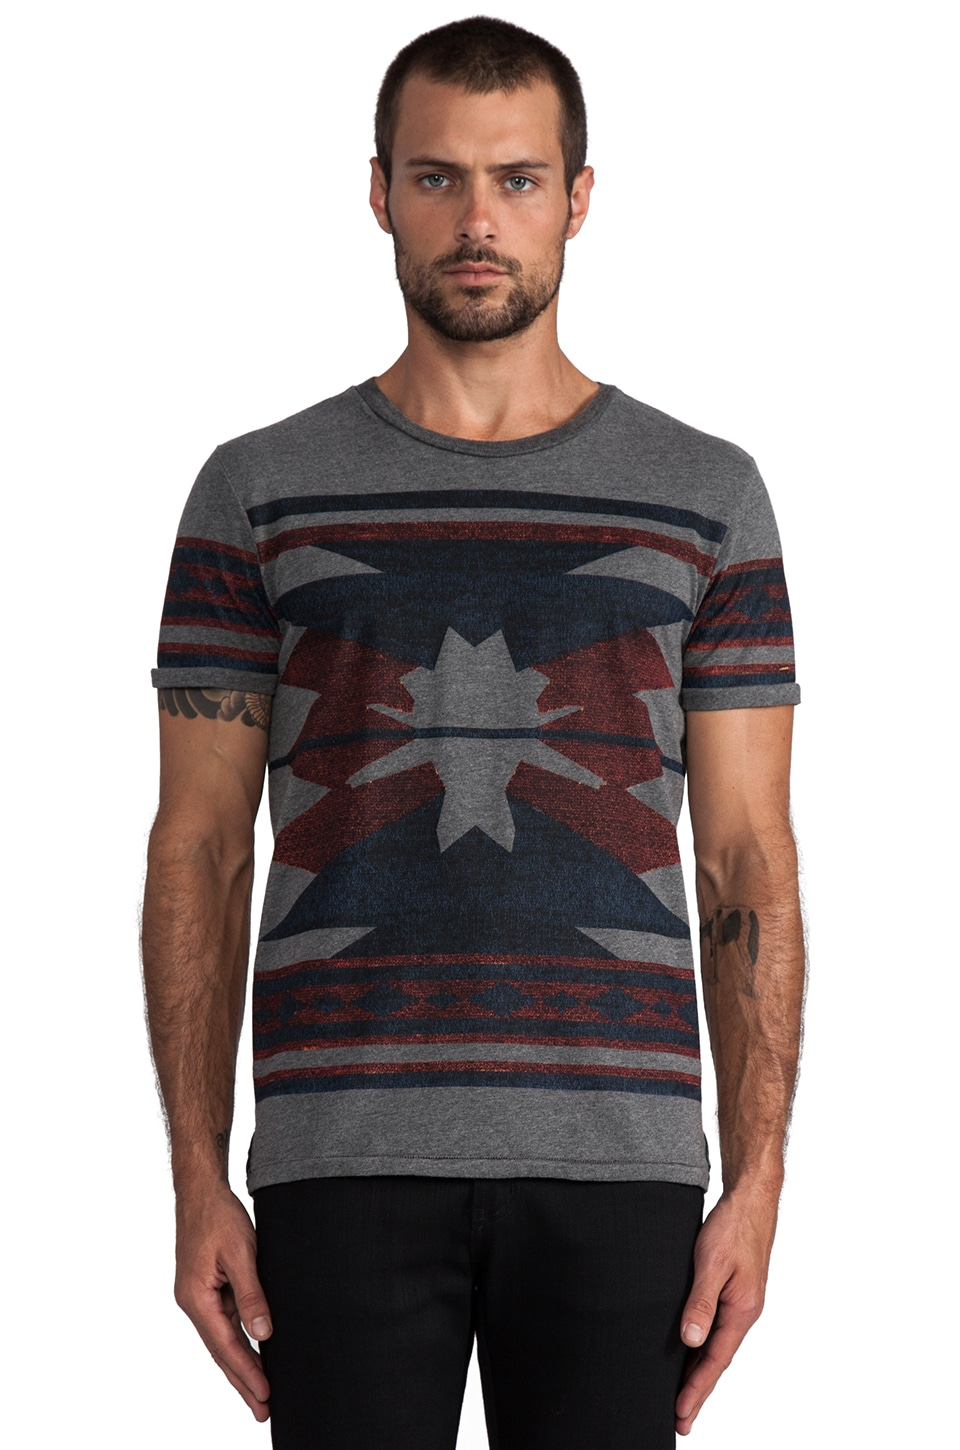 Scotch & Soda Intarsia Tee in Multi